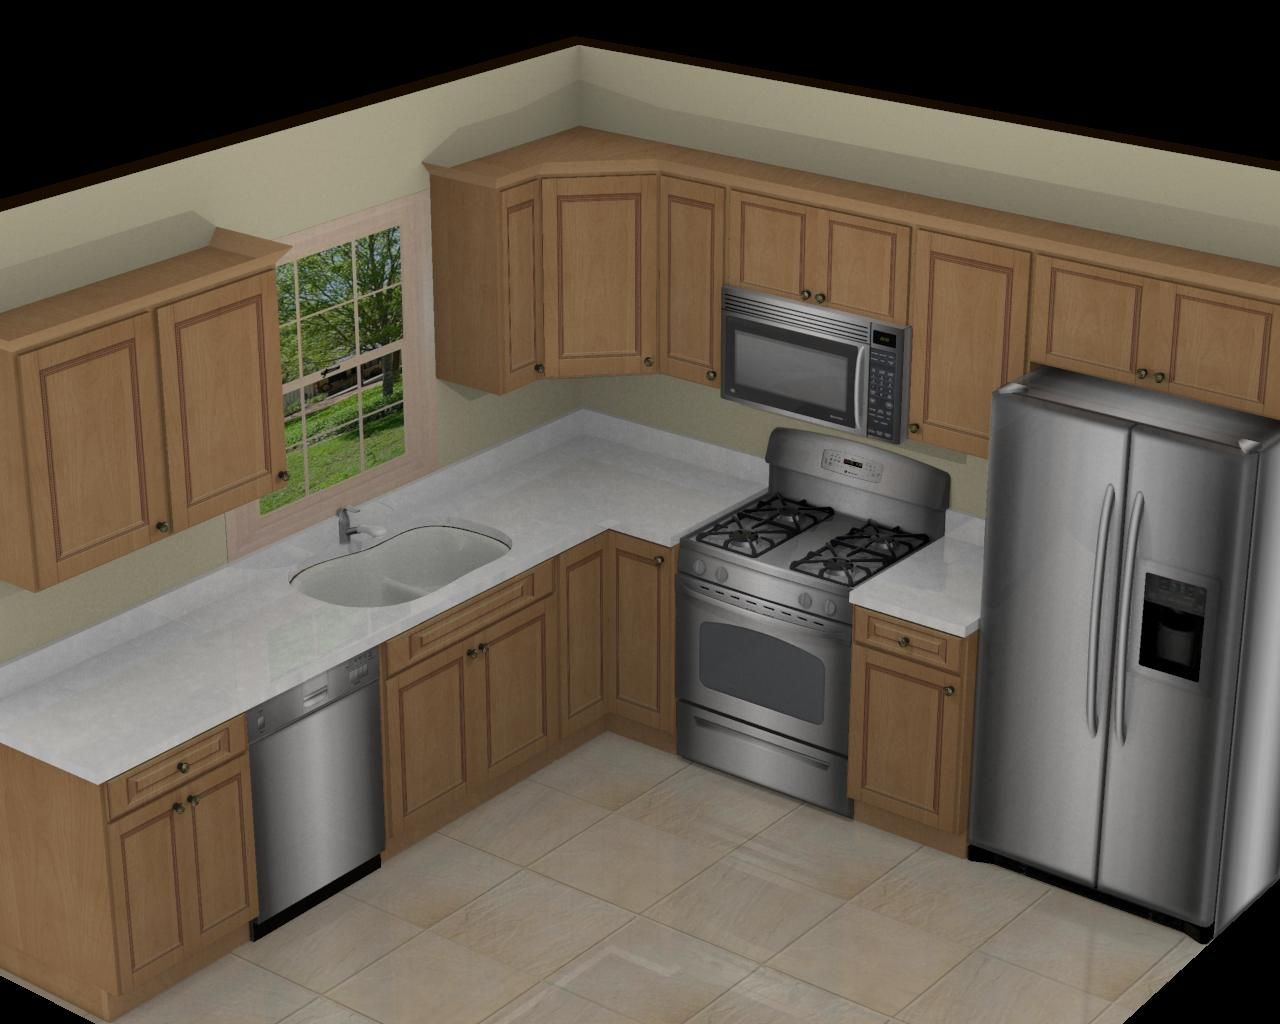 10x10 kitchen on pinterest l shaped kitchen kitchen for Kitchen cabinets 10 x 12